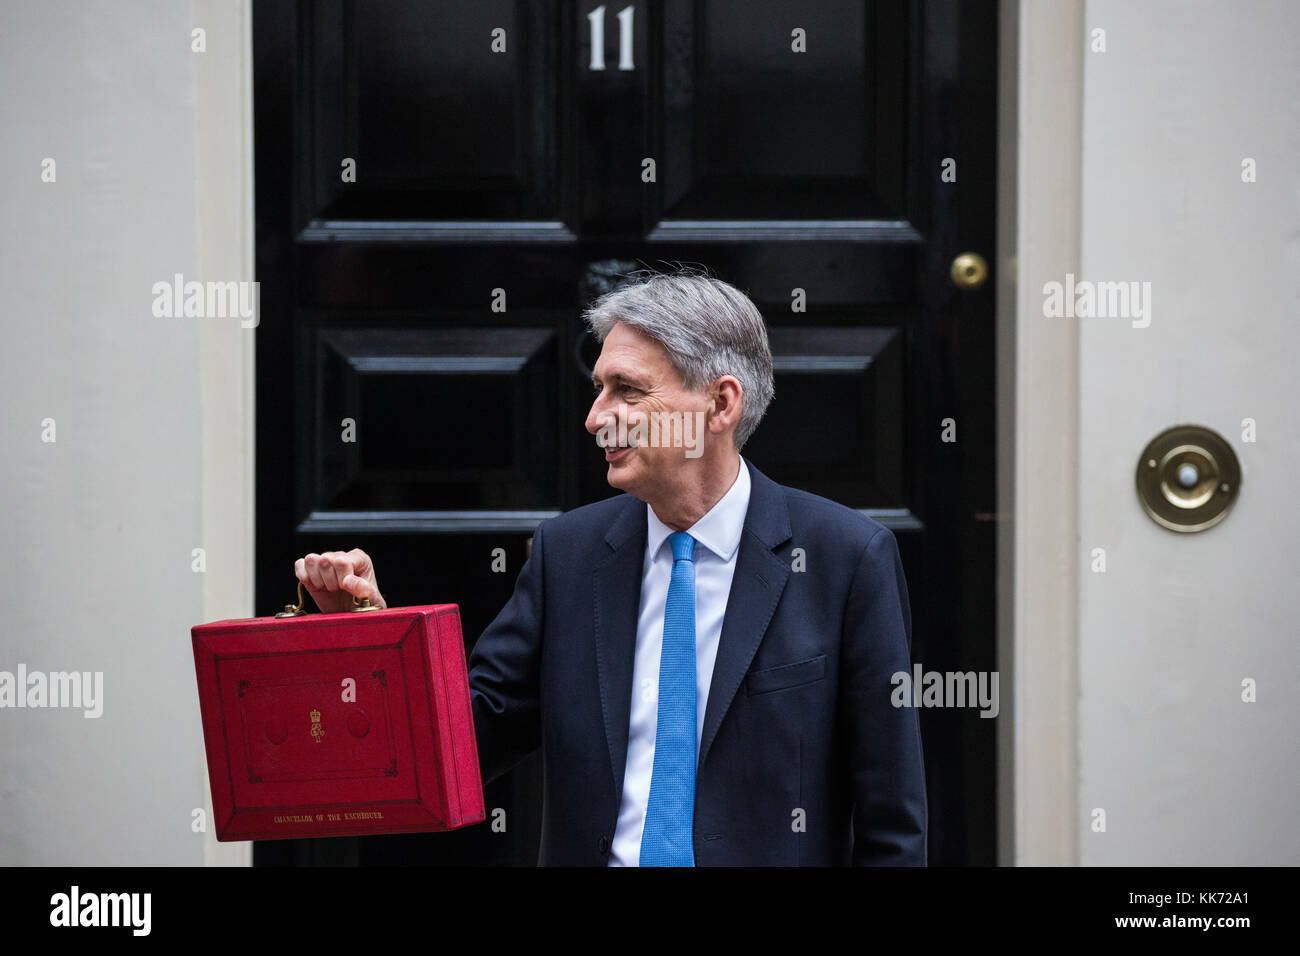 London, UK. 22nd November, 2017. Philip Hammond MP, Chancellor of the Exchequer, holds up the red case as he leaves - Stock Image